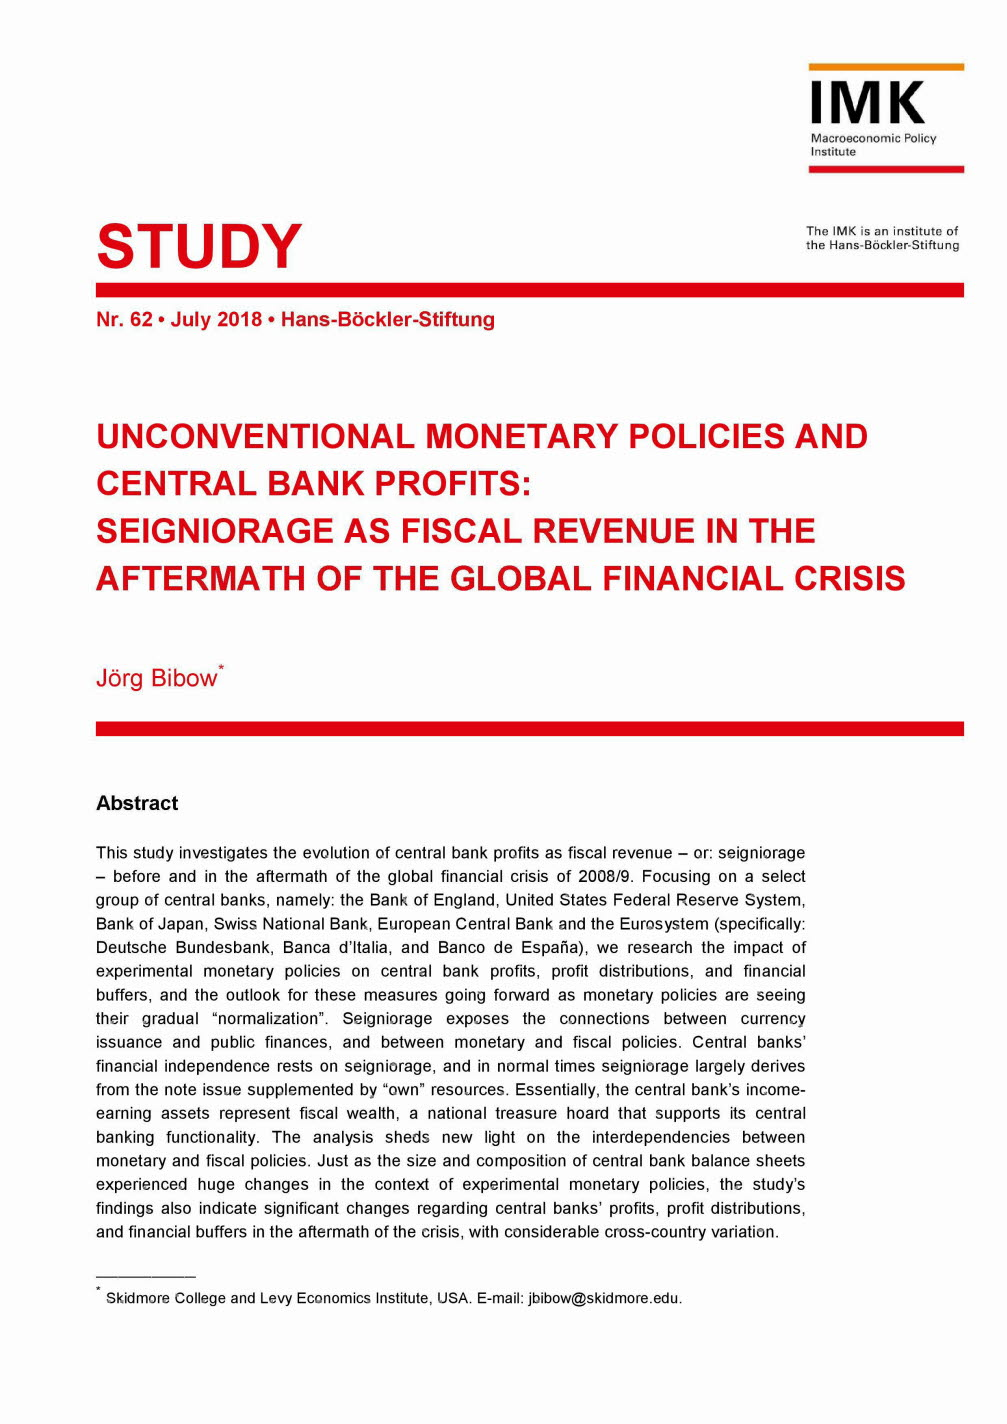 Unconventional monetary policies and central bank profits